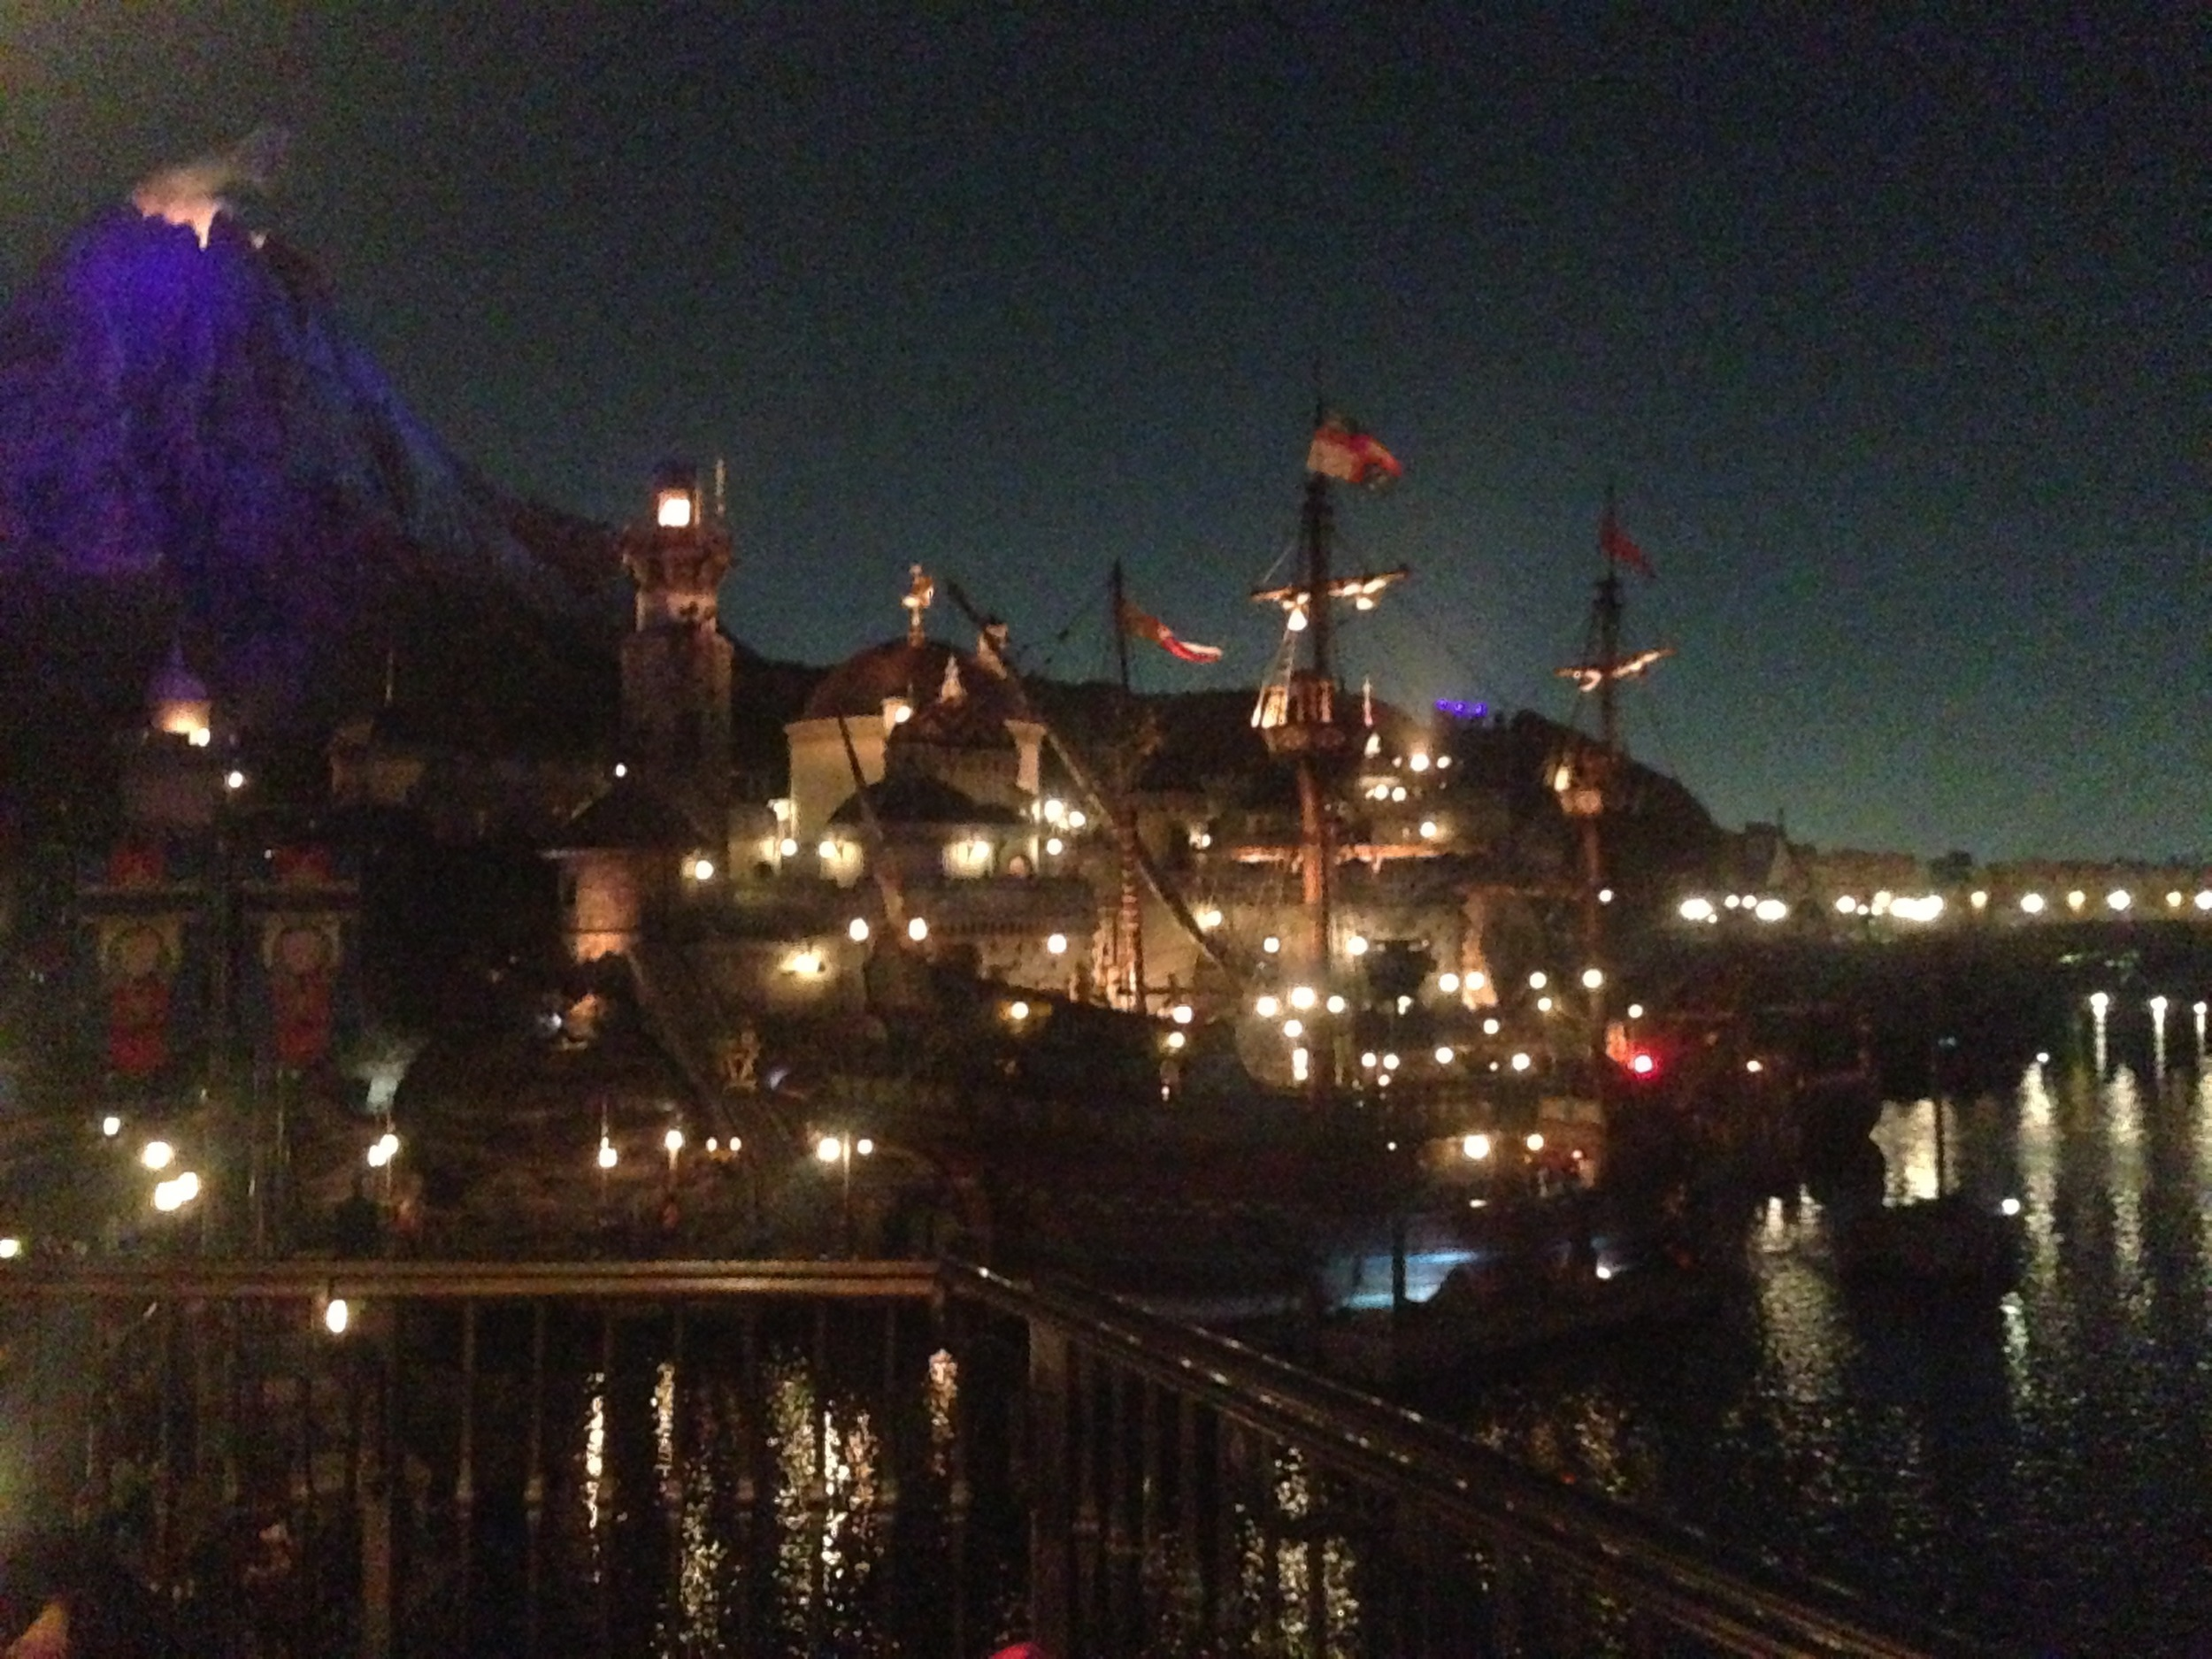 Pirate ship, a Medieval castle, and volcano on the Mediterranean lagoon.